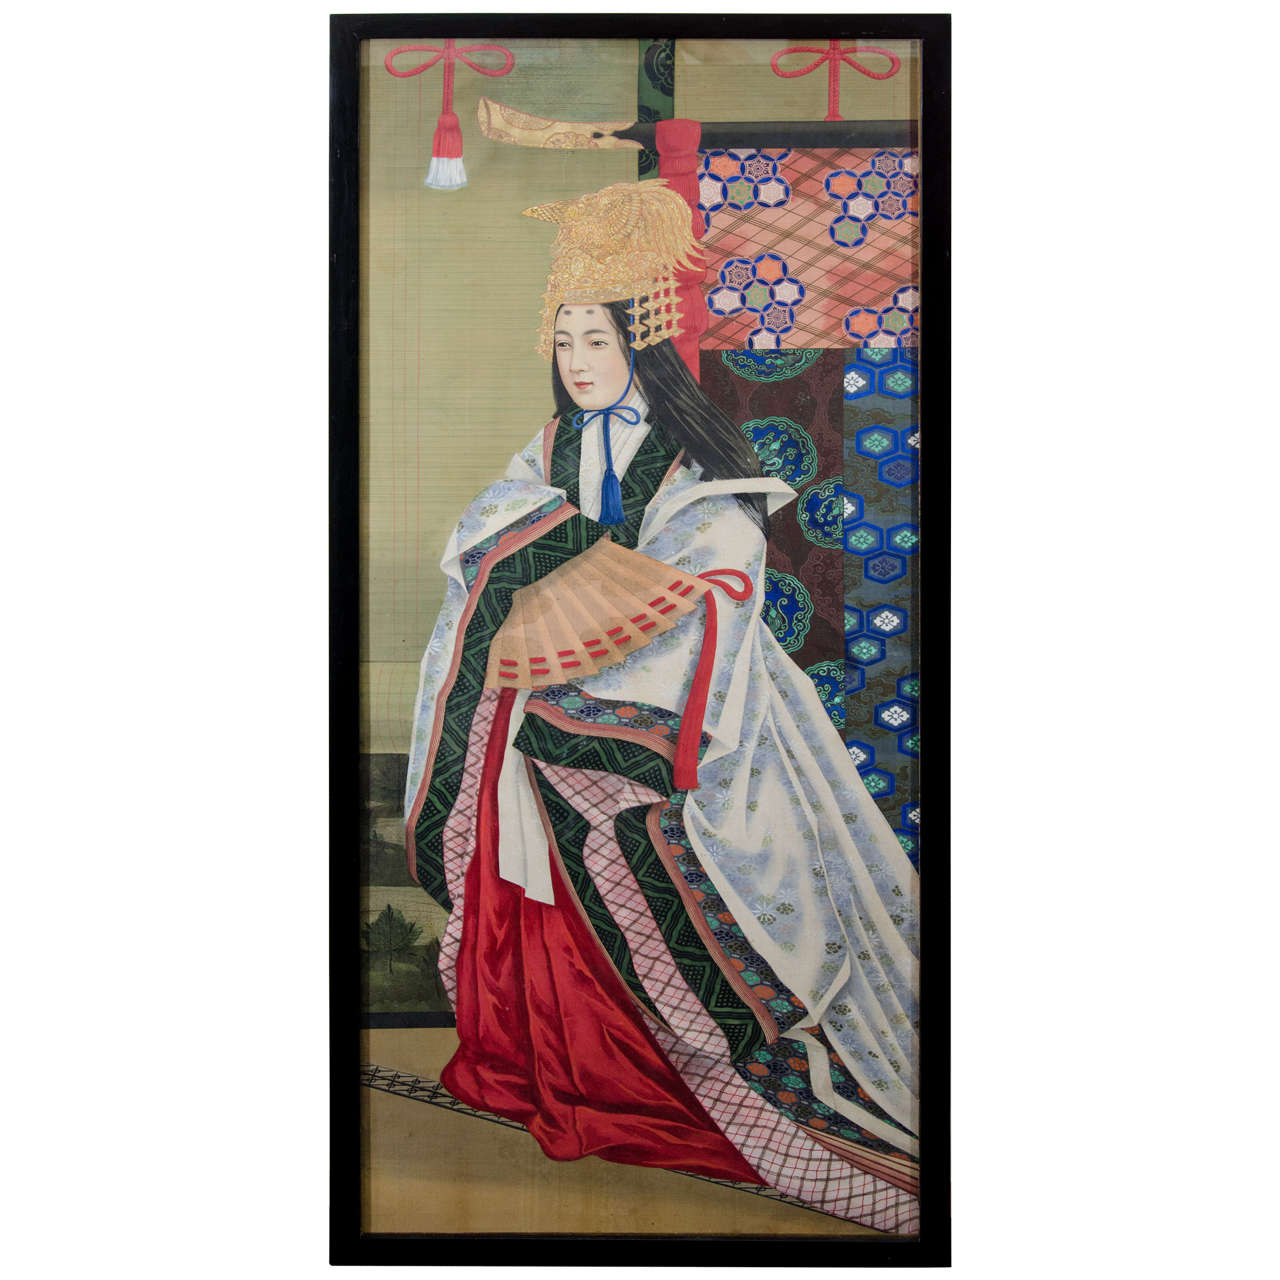 Japanese Imperial Portrait Painting of Woman in White, Red and Black